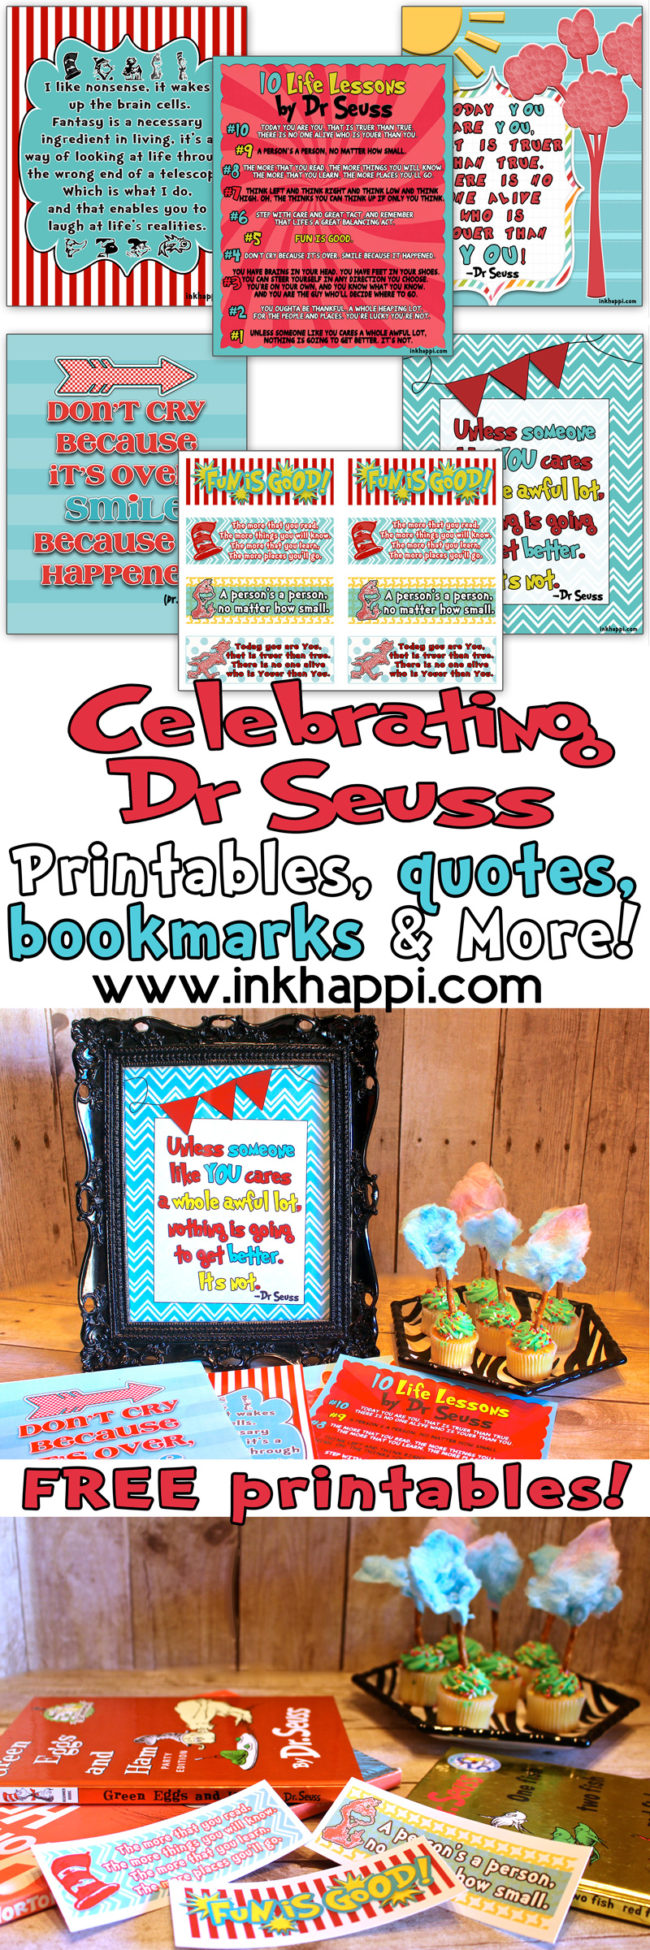 Celebrating Dr Suess with lots of fun, FREE PRINTABLES :)